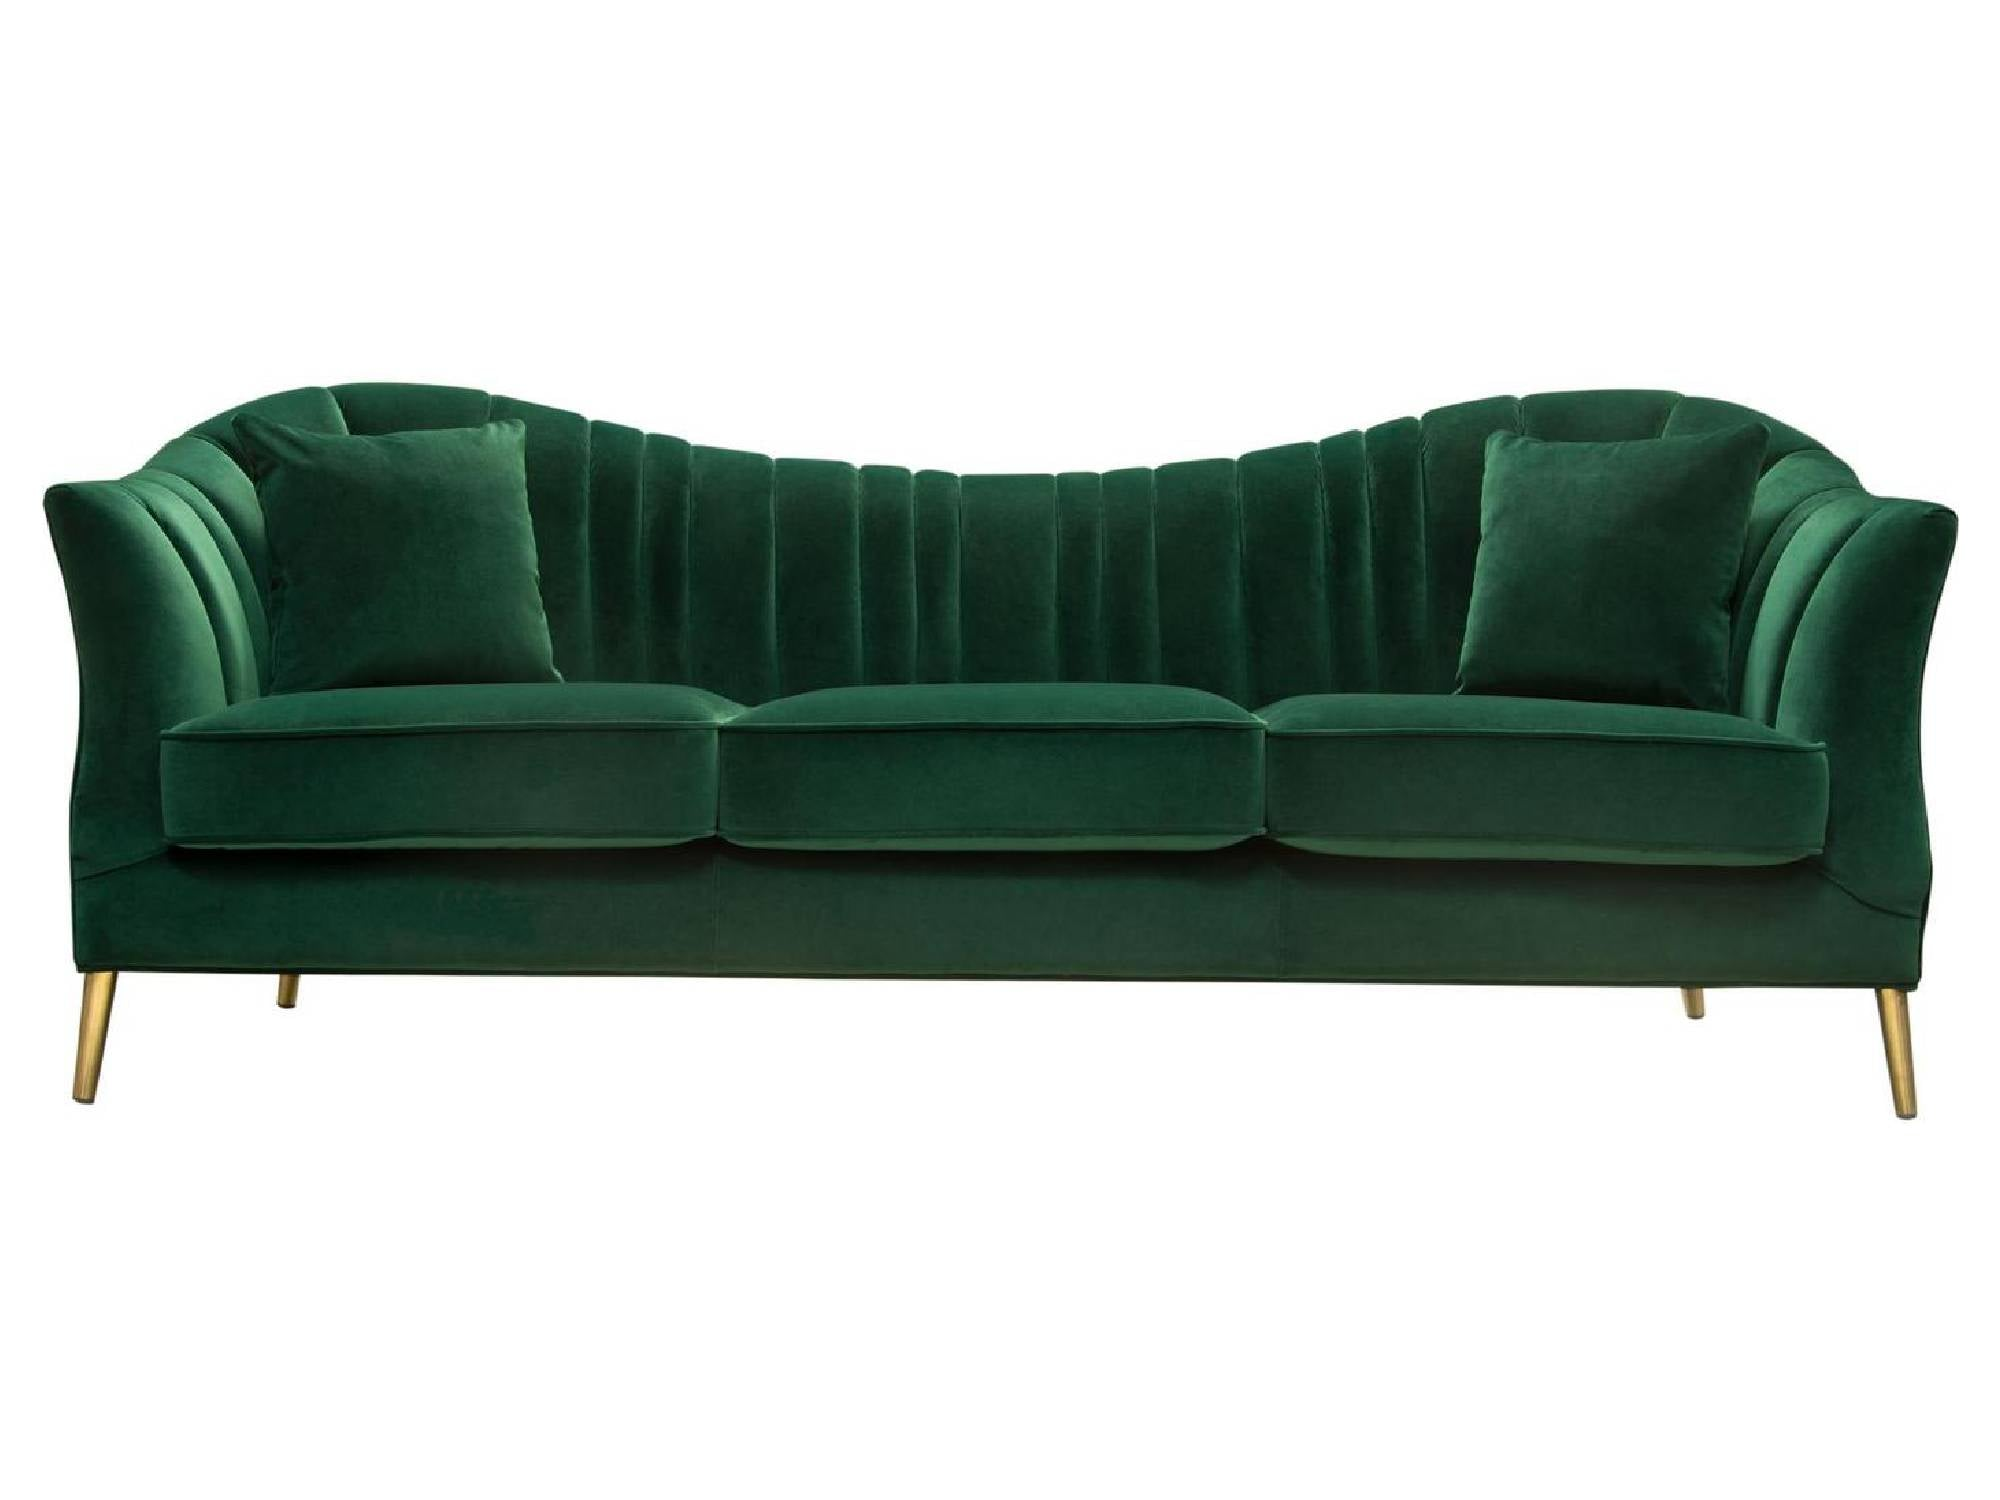 SINCLAIR SOFA - EMERALD